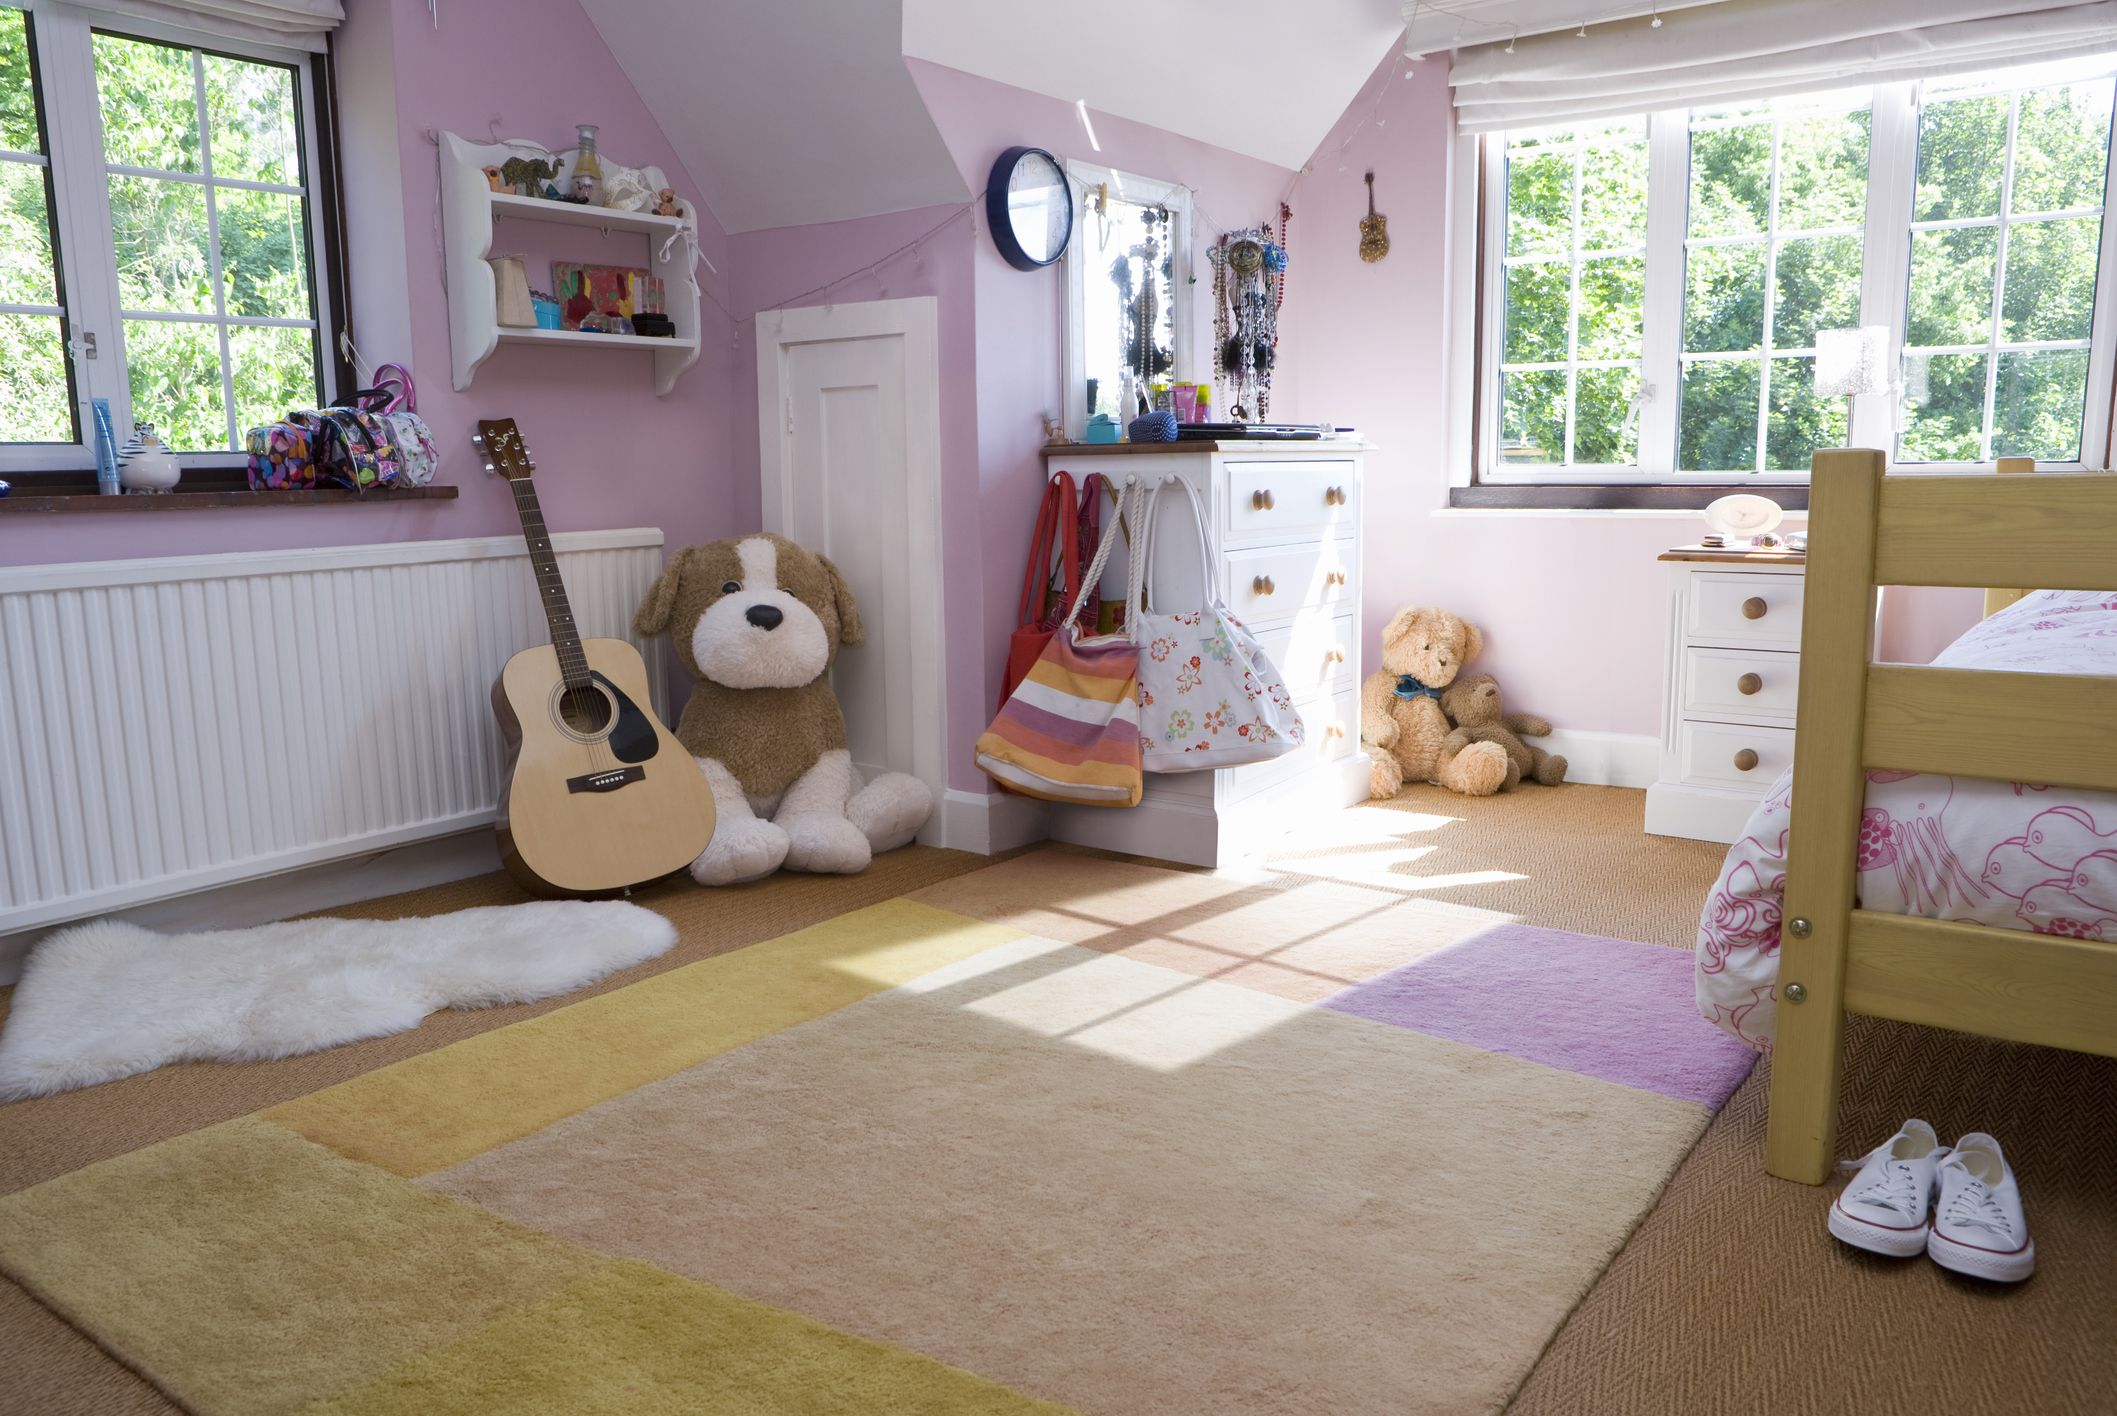 Best Flooring Options For A Kid's Bedroom